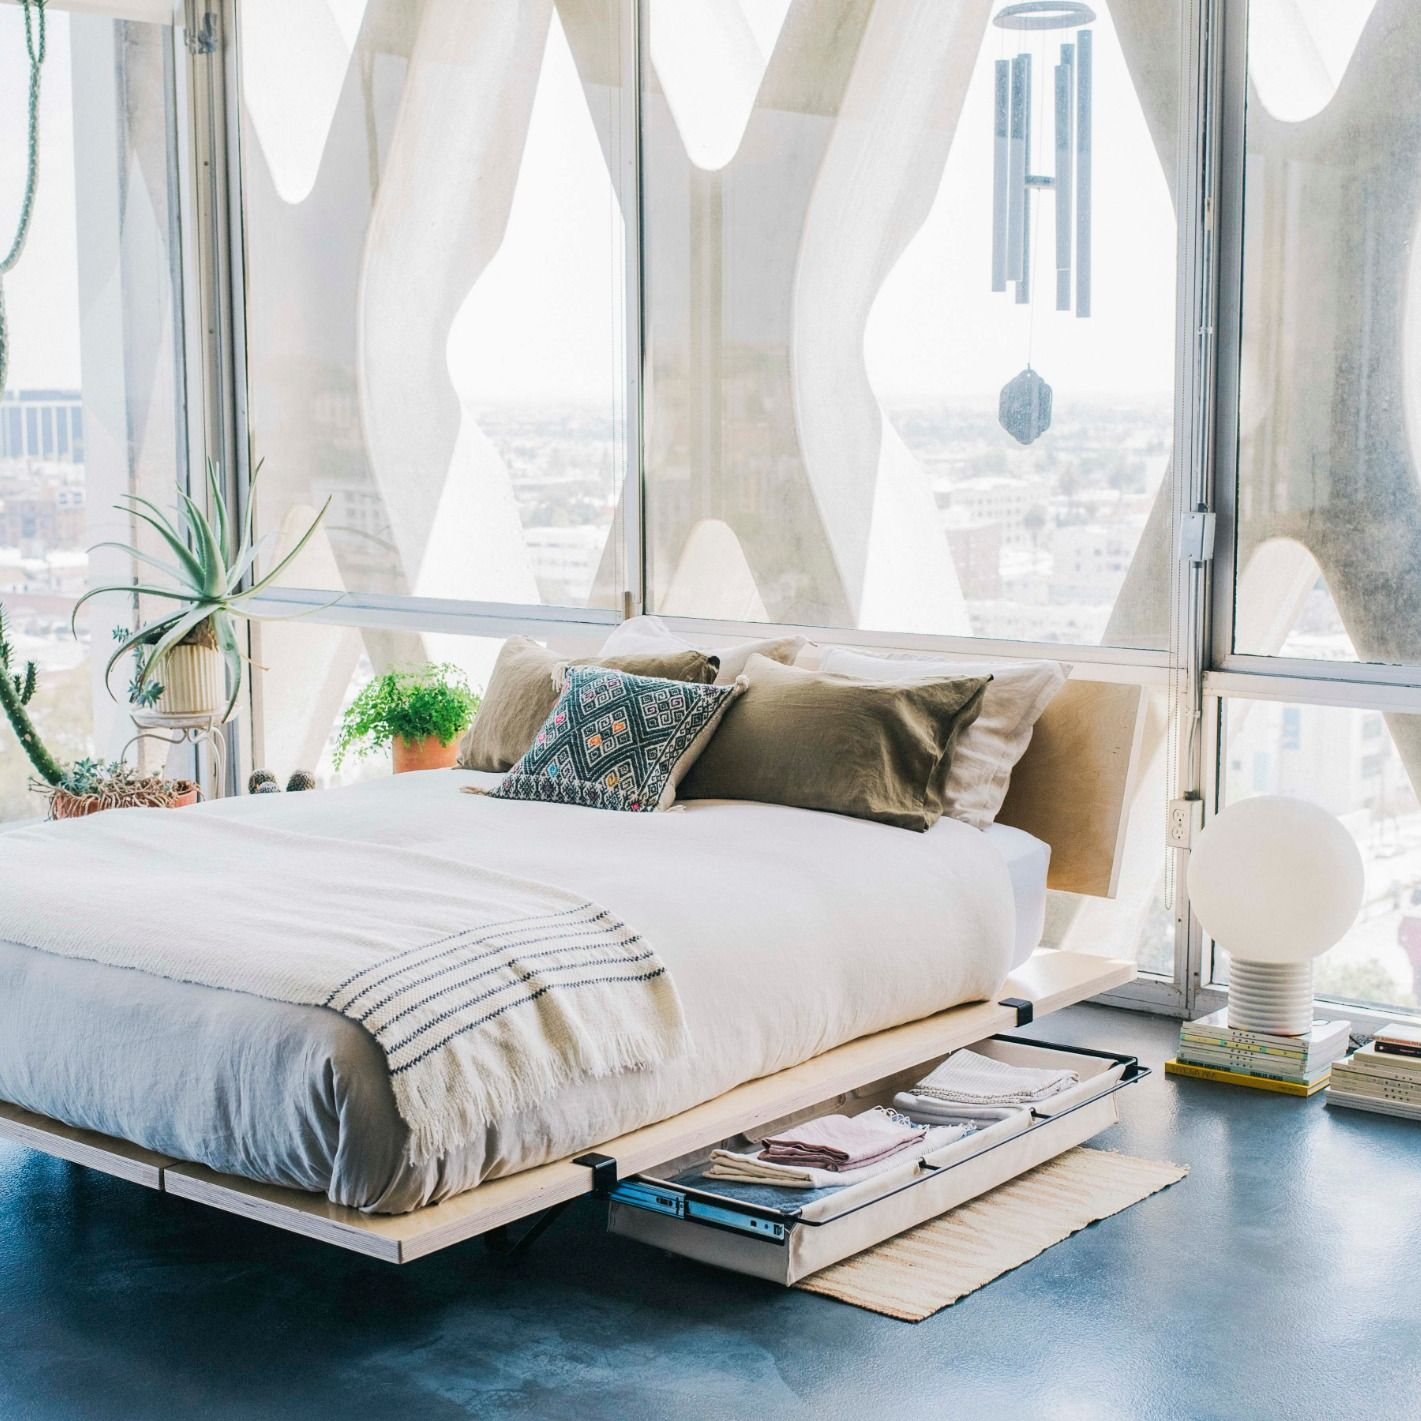 The World S Most Modular Bed Frame From A Platform To A Head